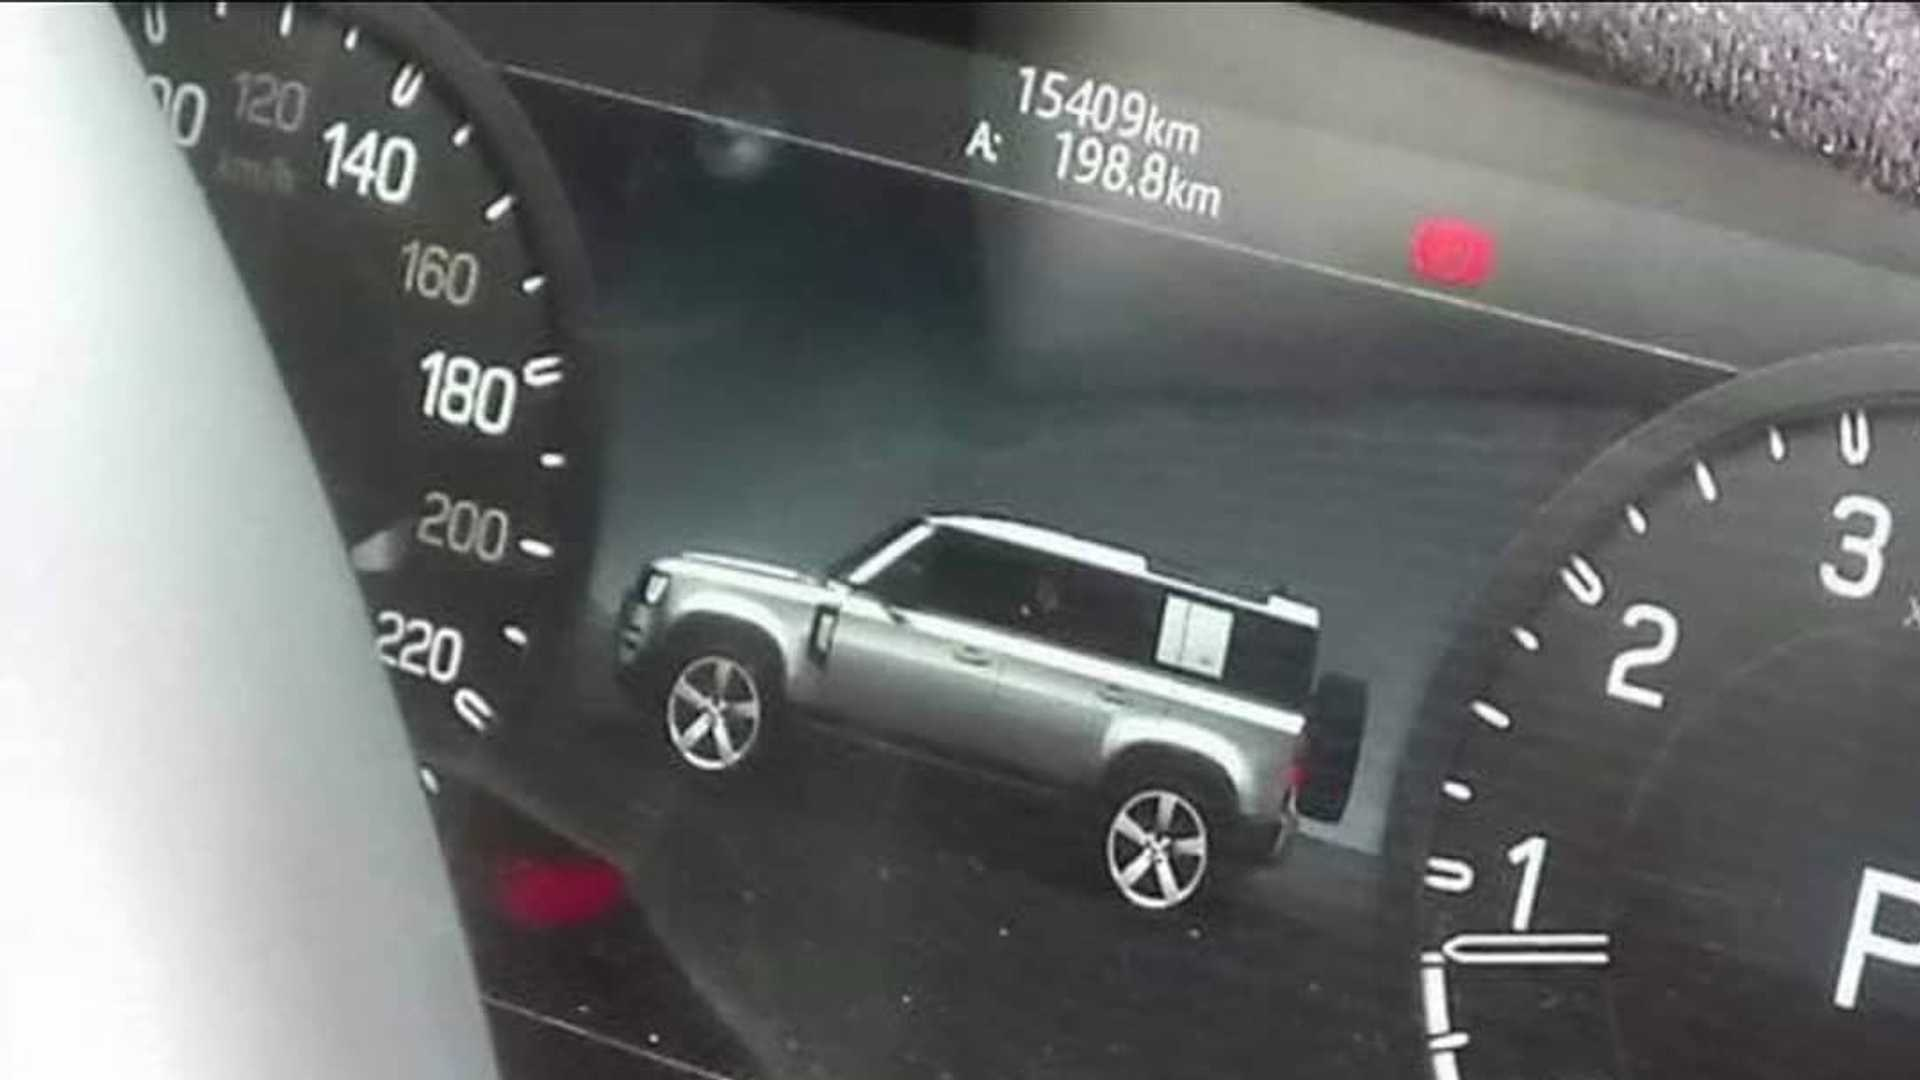 New Defender Reveals Profile Via Its Own Instrument Cluster